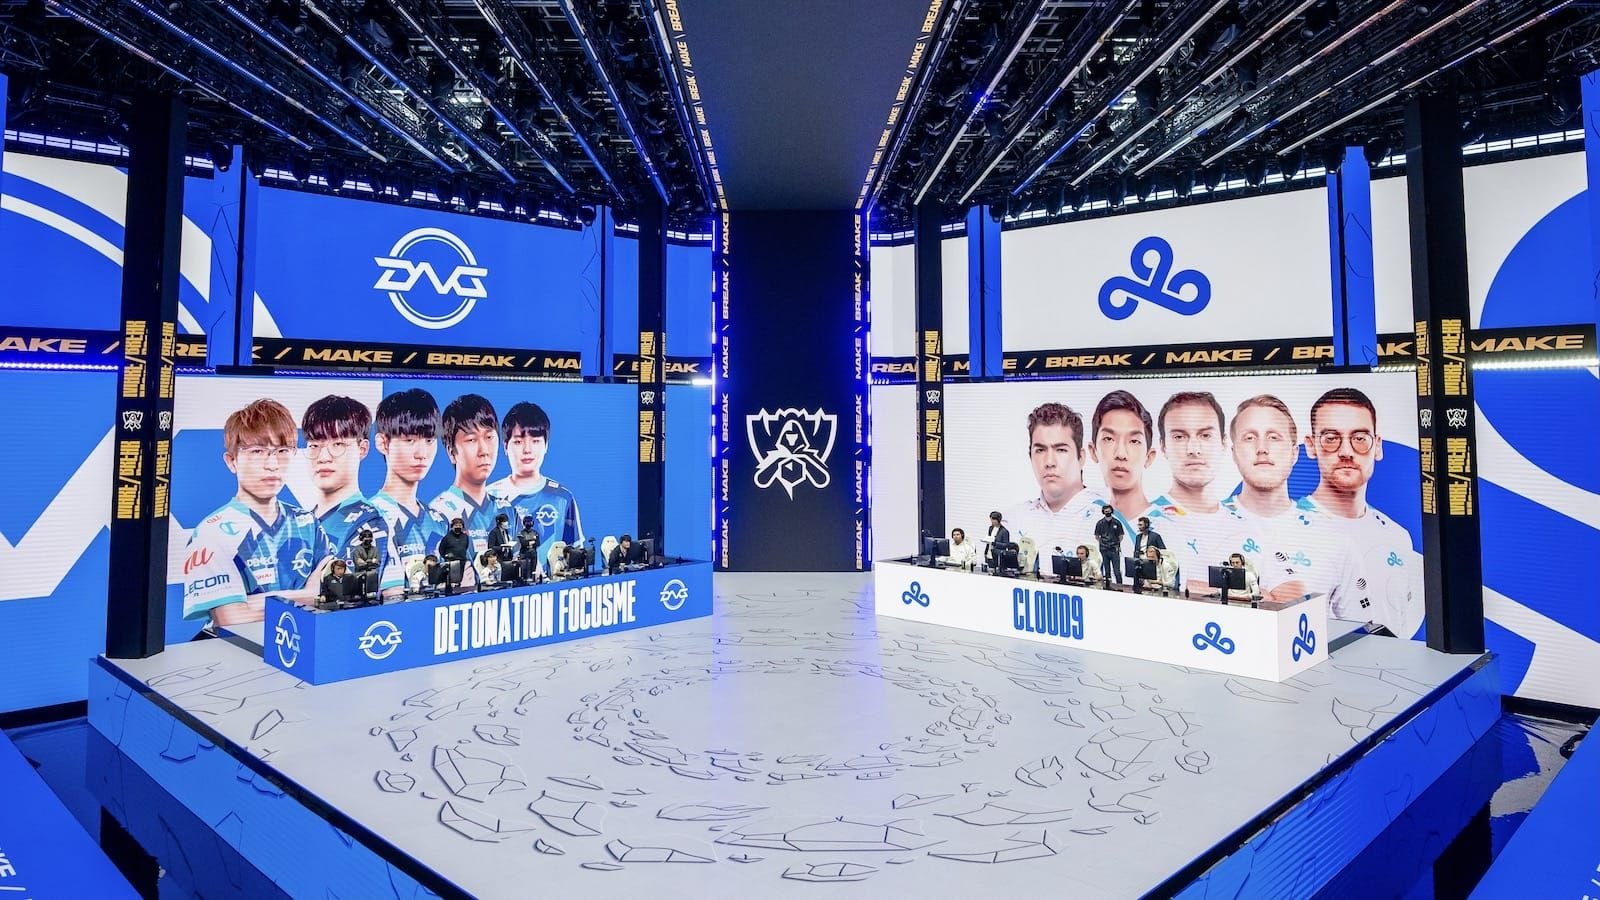 Cloud9 and Detonation Focus Me League of Legends teams on stage at their PCs at Worlds 2021